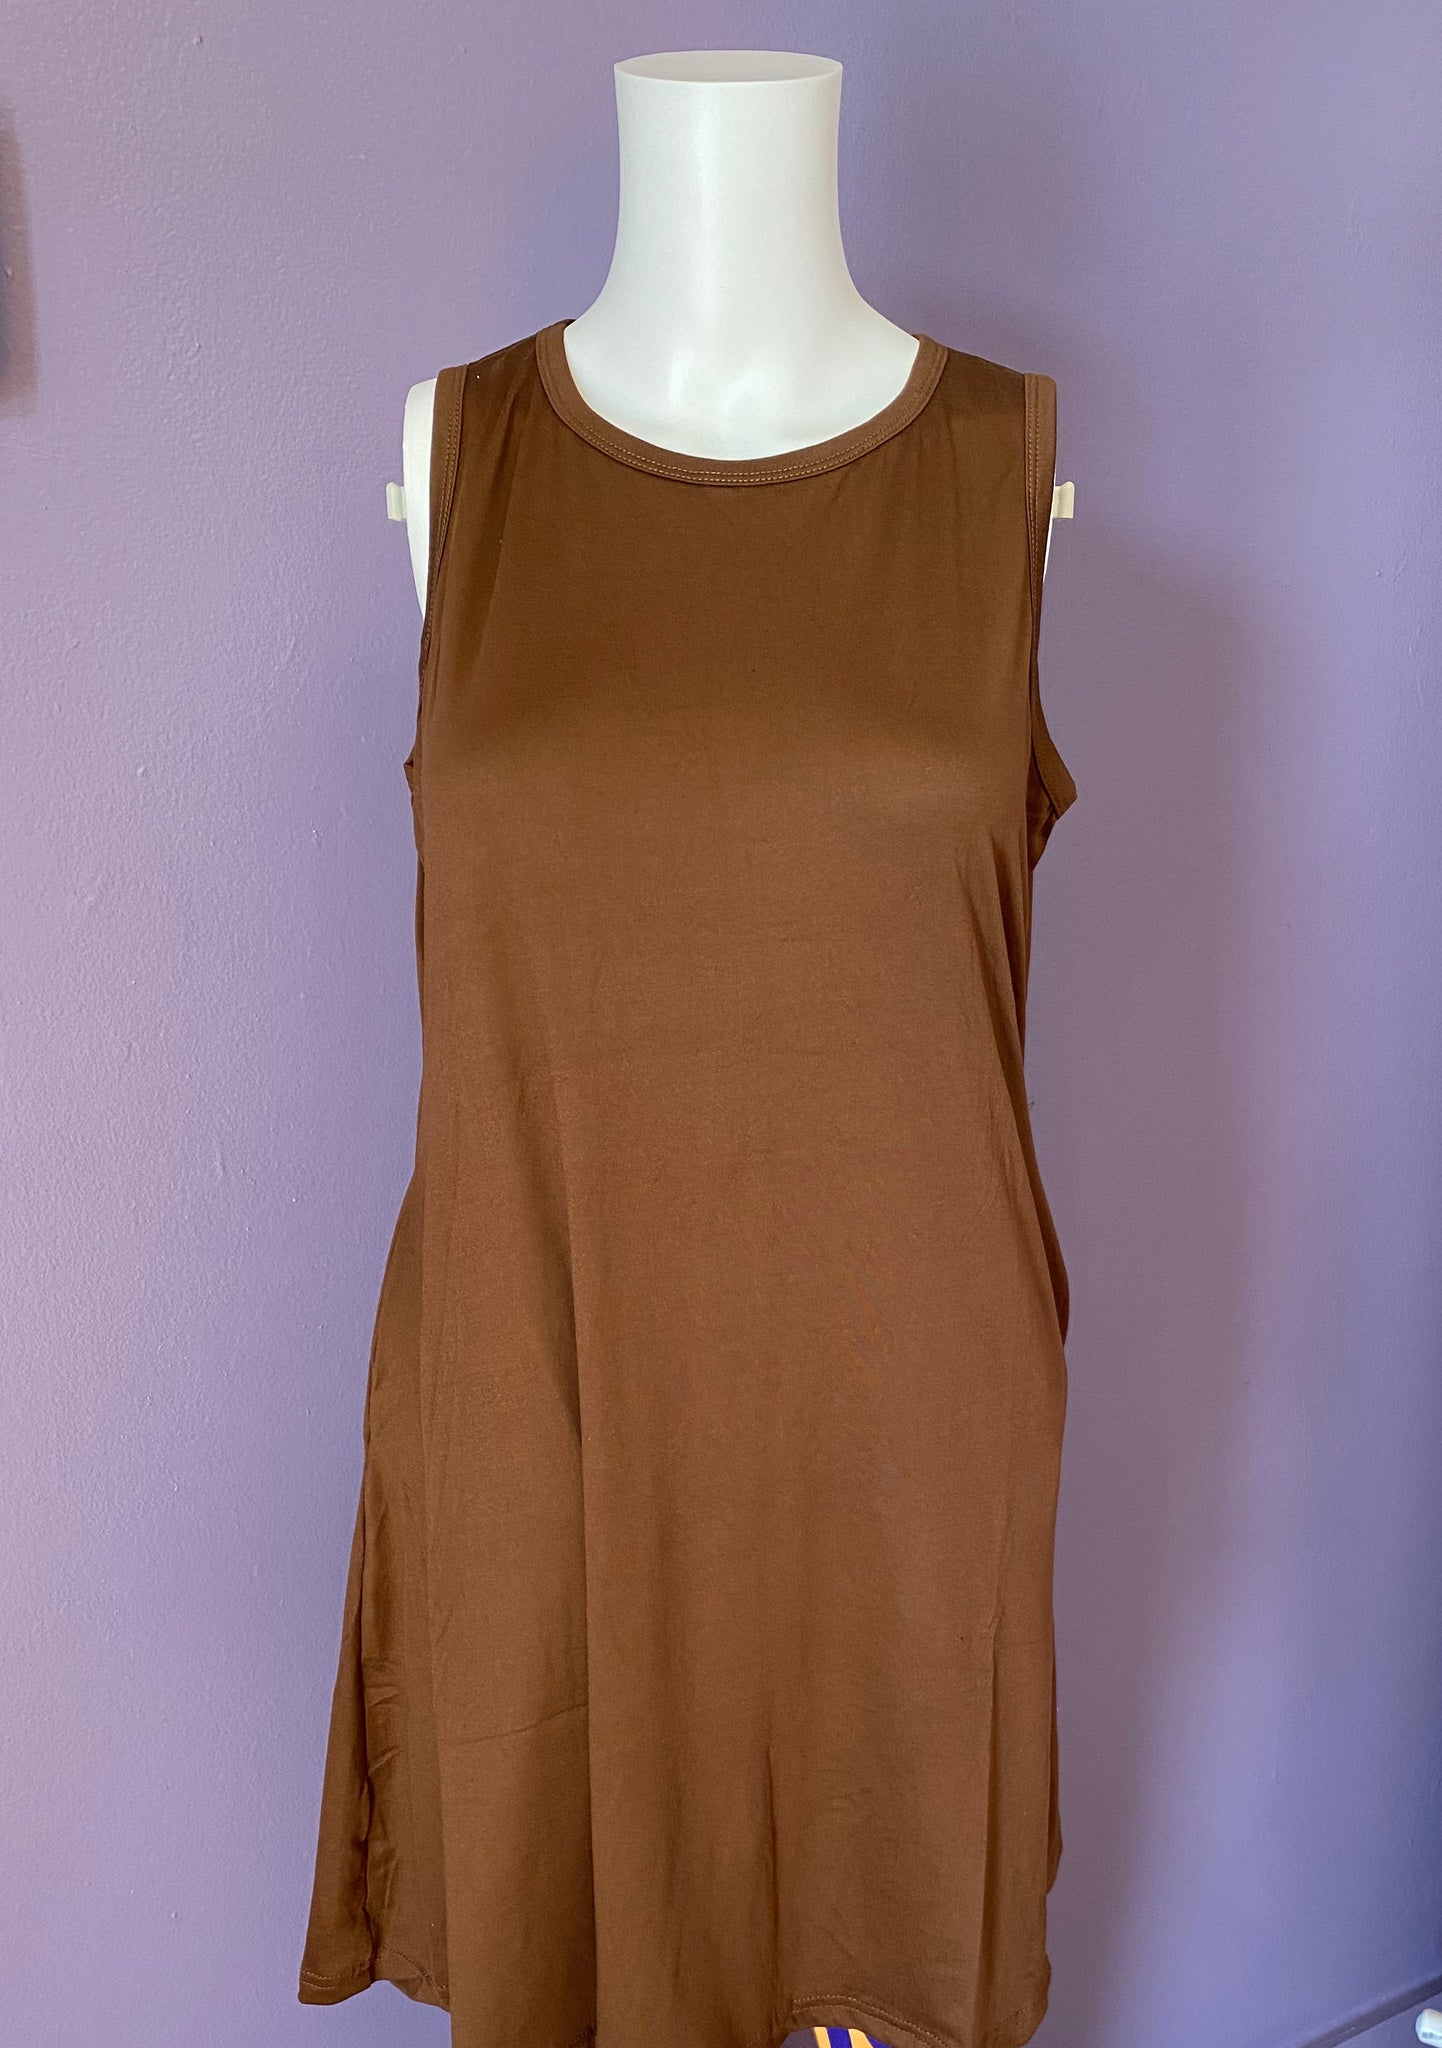 Sleeveless Swing Top With Pockets - Brown